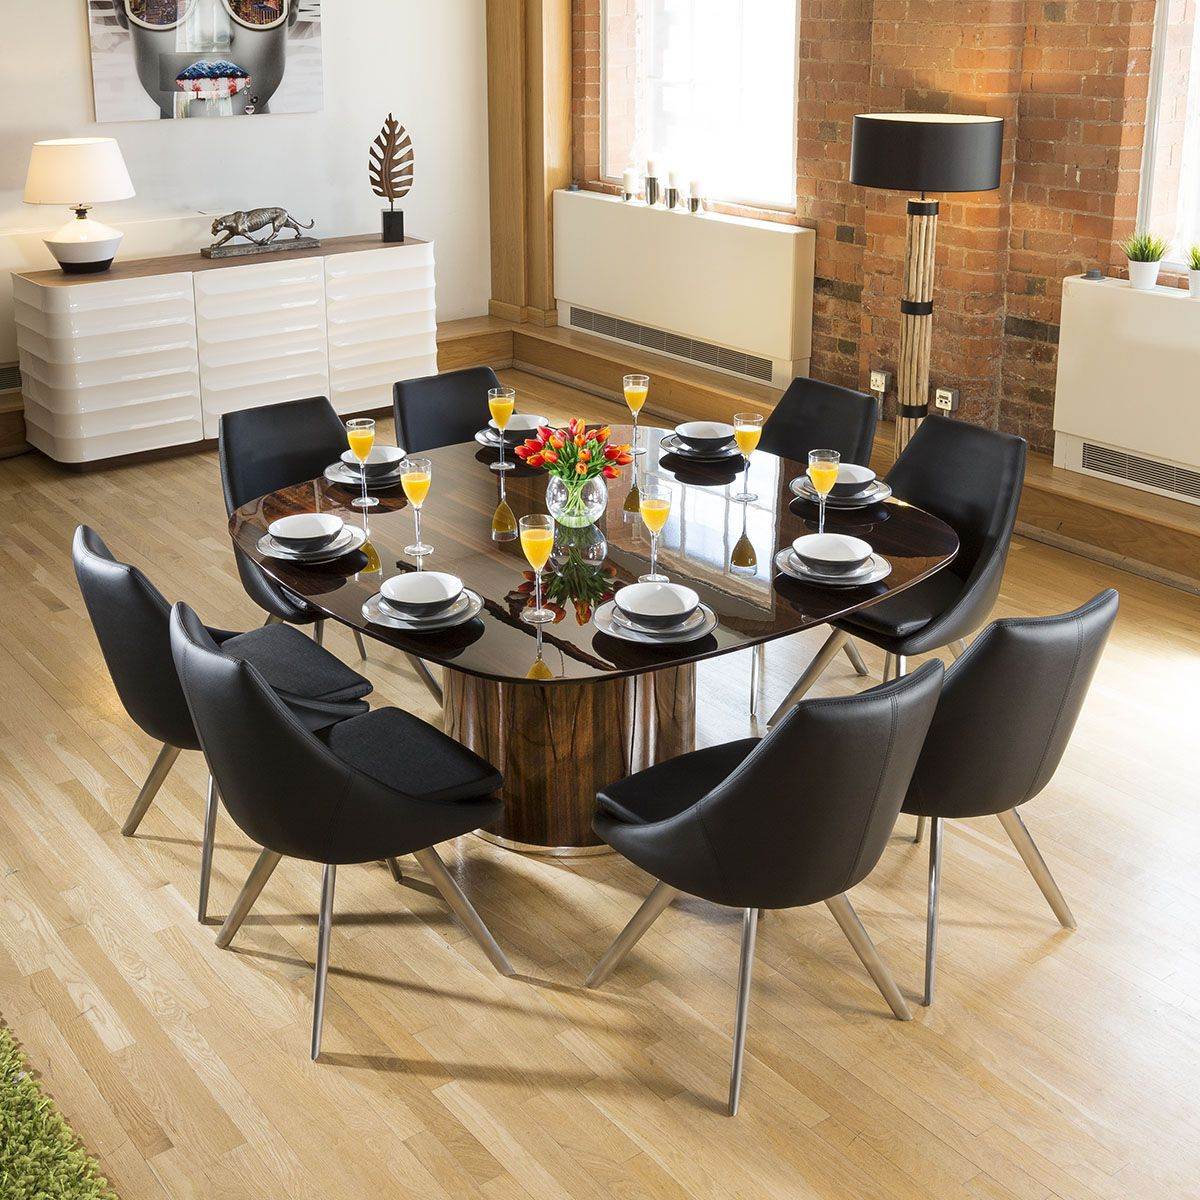 Large Luxury Square Eucalyptus Dining Table 8 Black Modern Chairs Large Square Dining Table Square Dining Tables Dining Furniture Sets